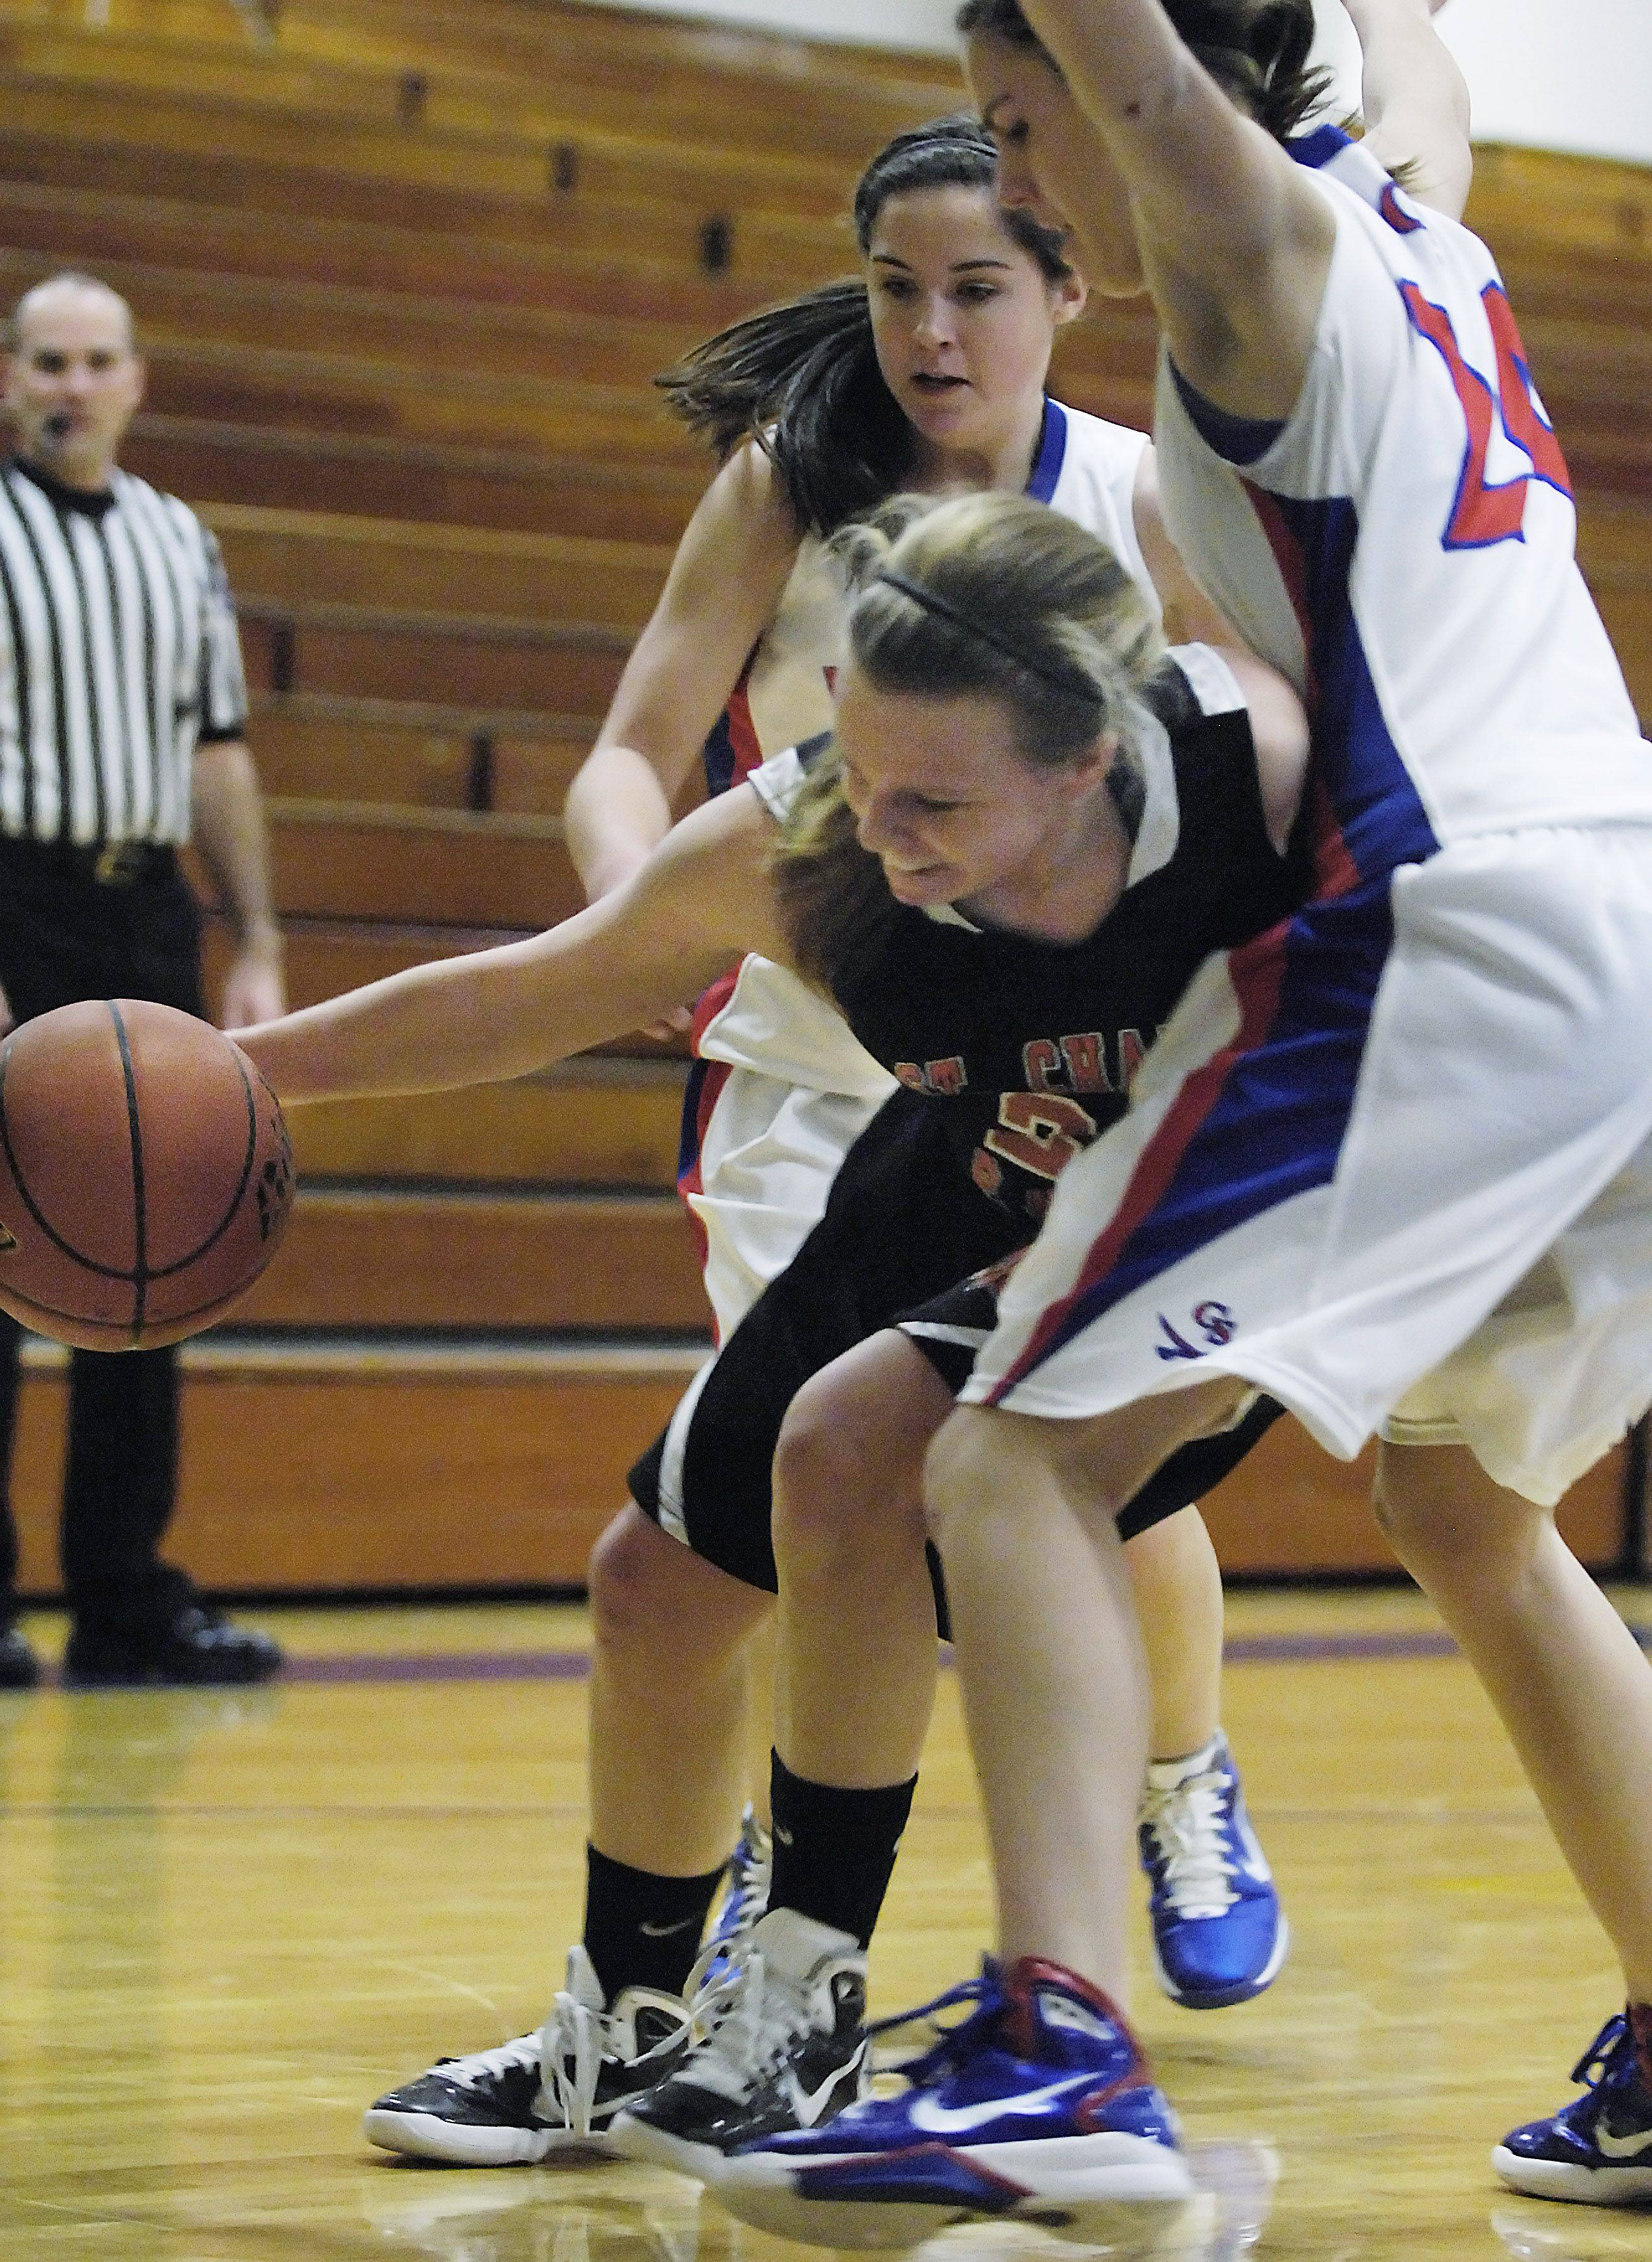 St. Charles East's Amanda Hilton controls the ball under the basket against Glenbard South's Danielle Chitkowski and Alyse Cates.